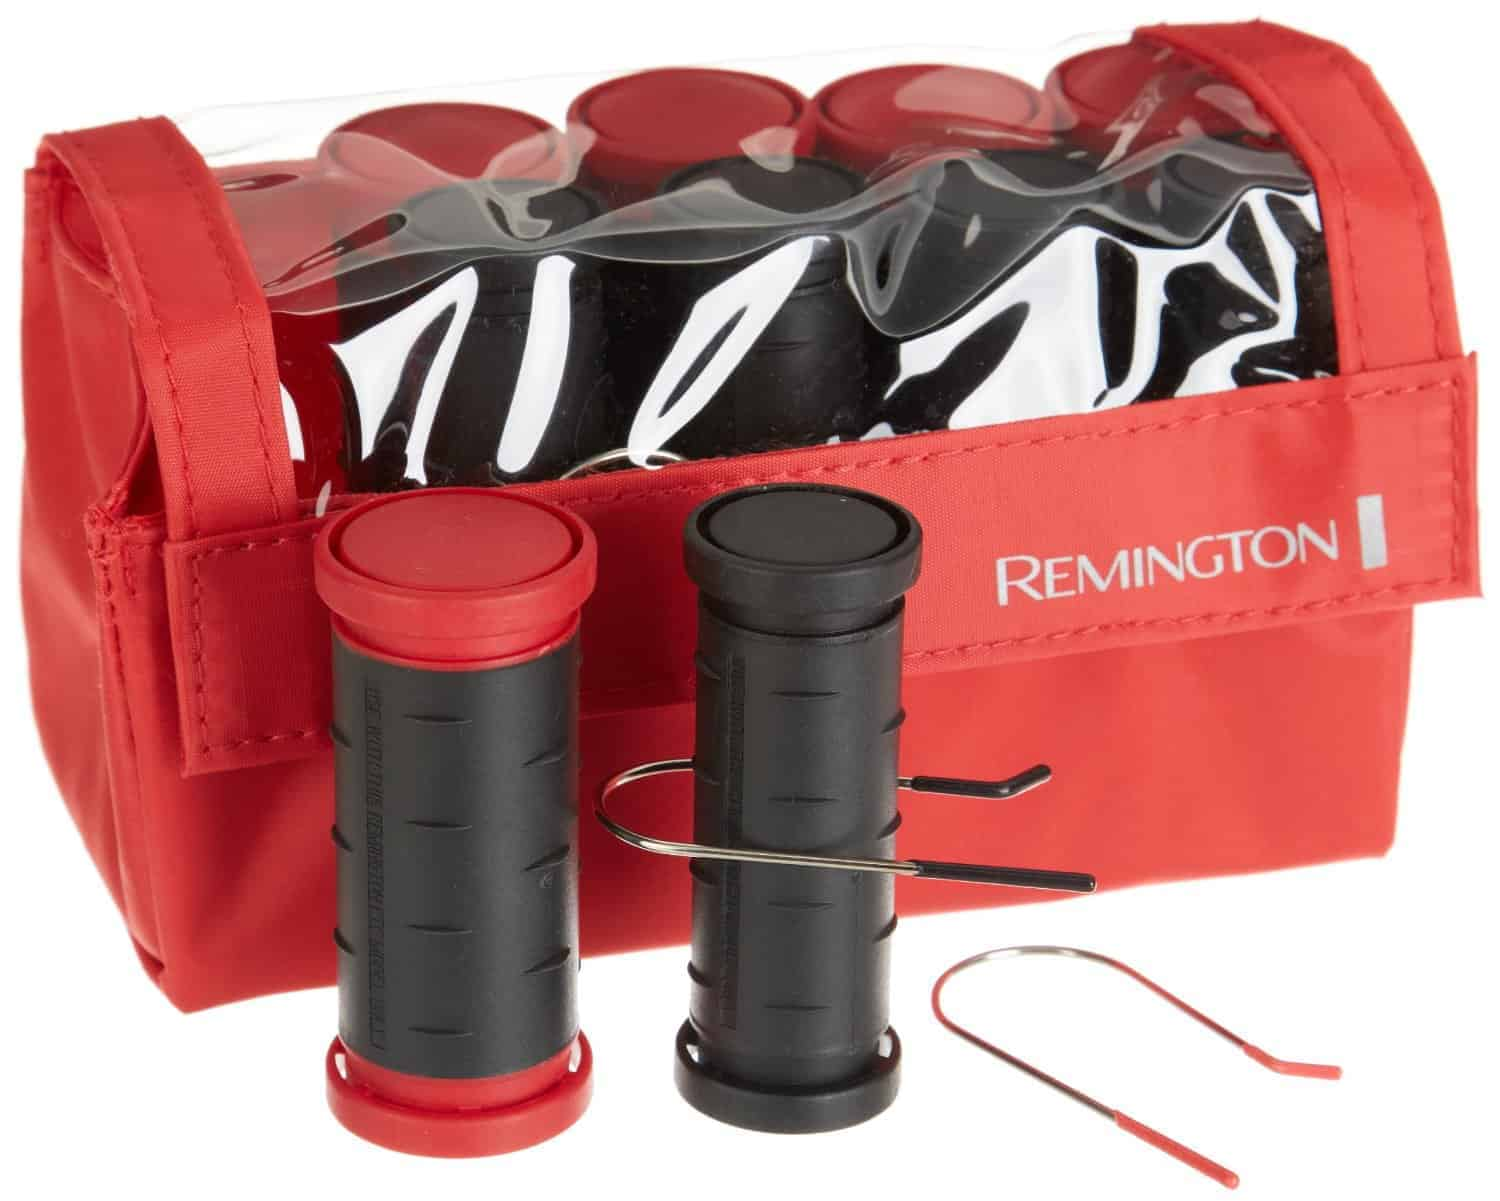 Remington H-1015 - Best Travel Hot Rollers